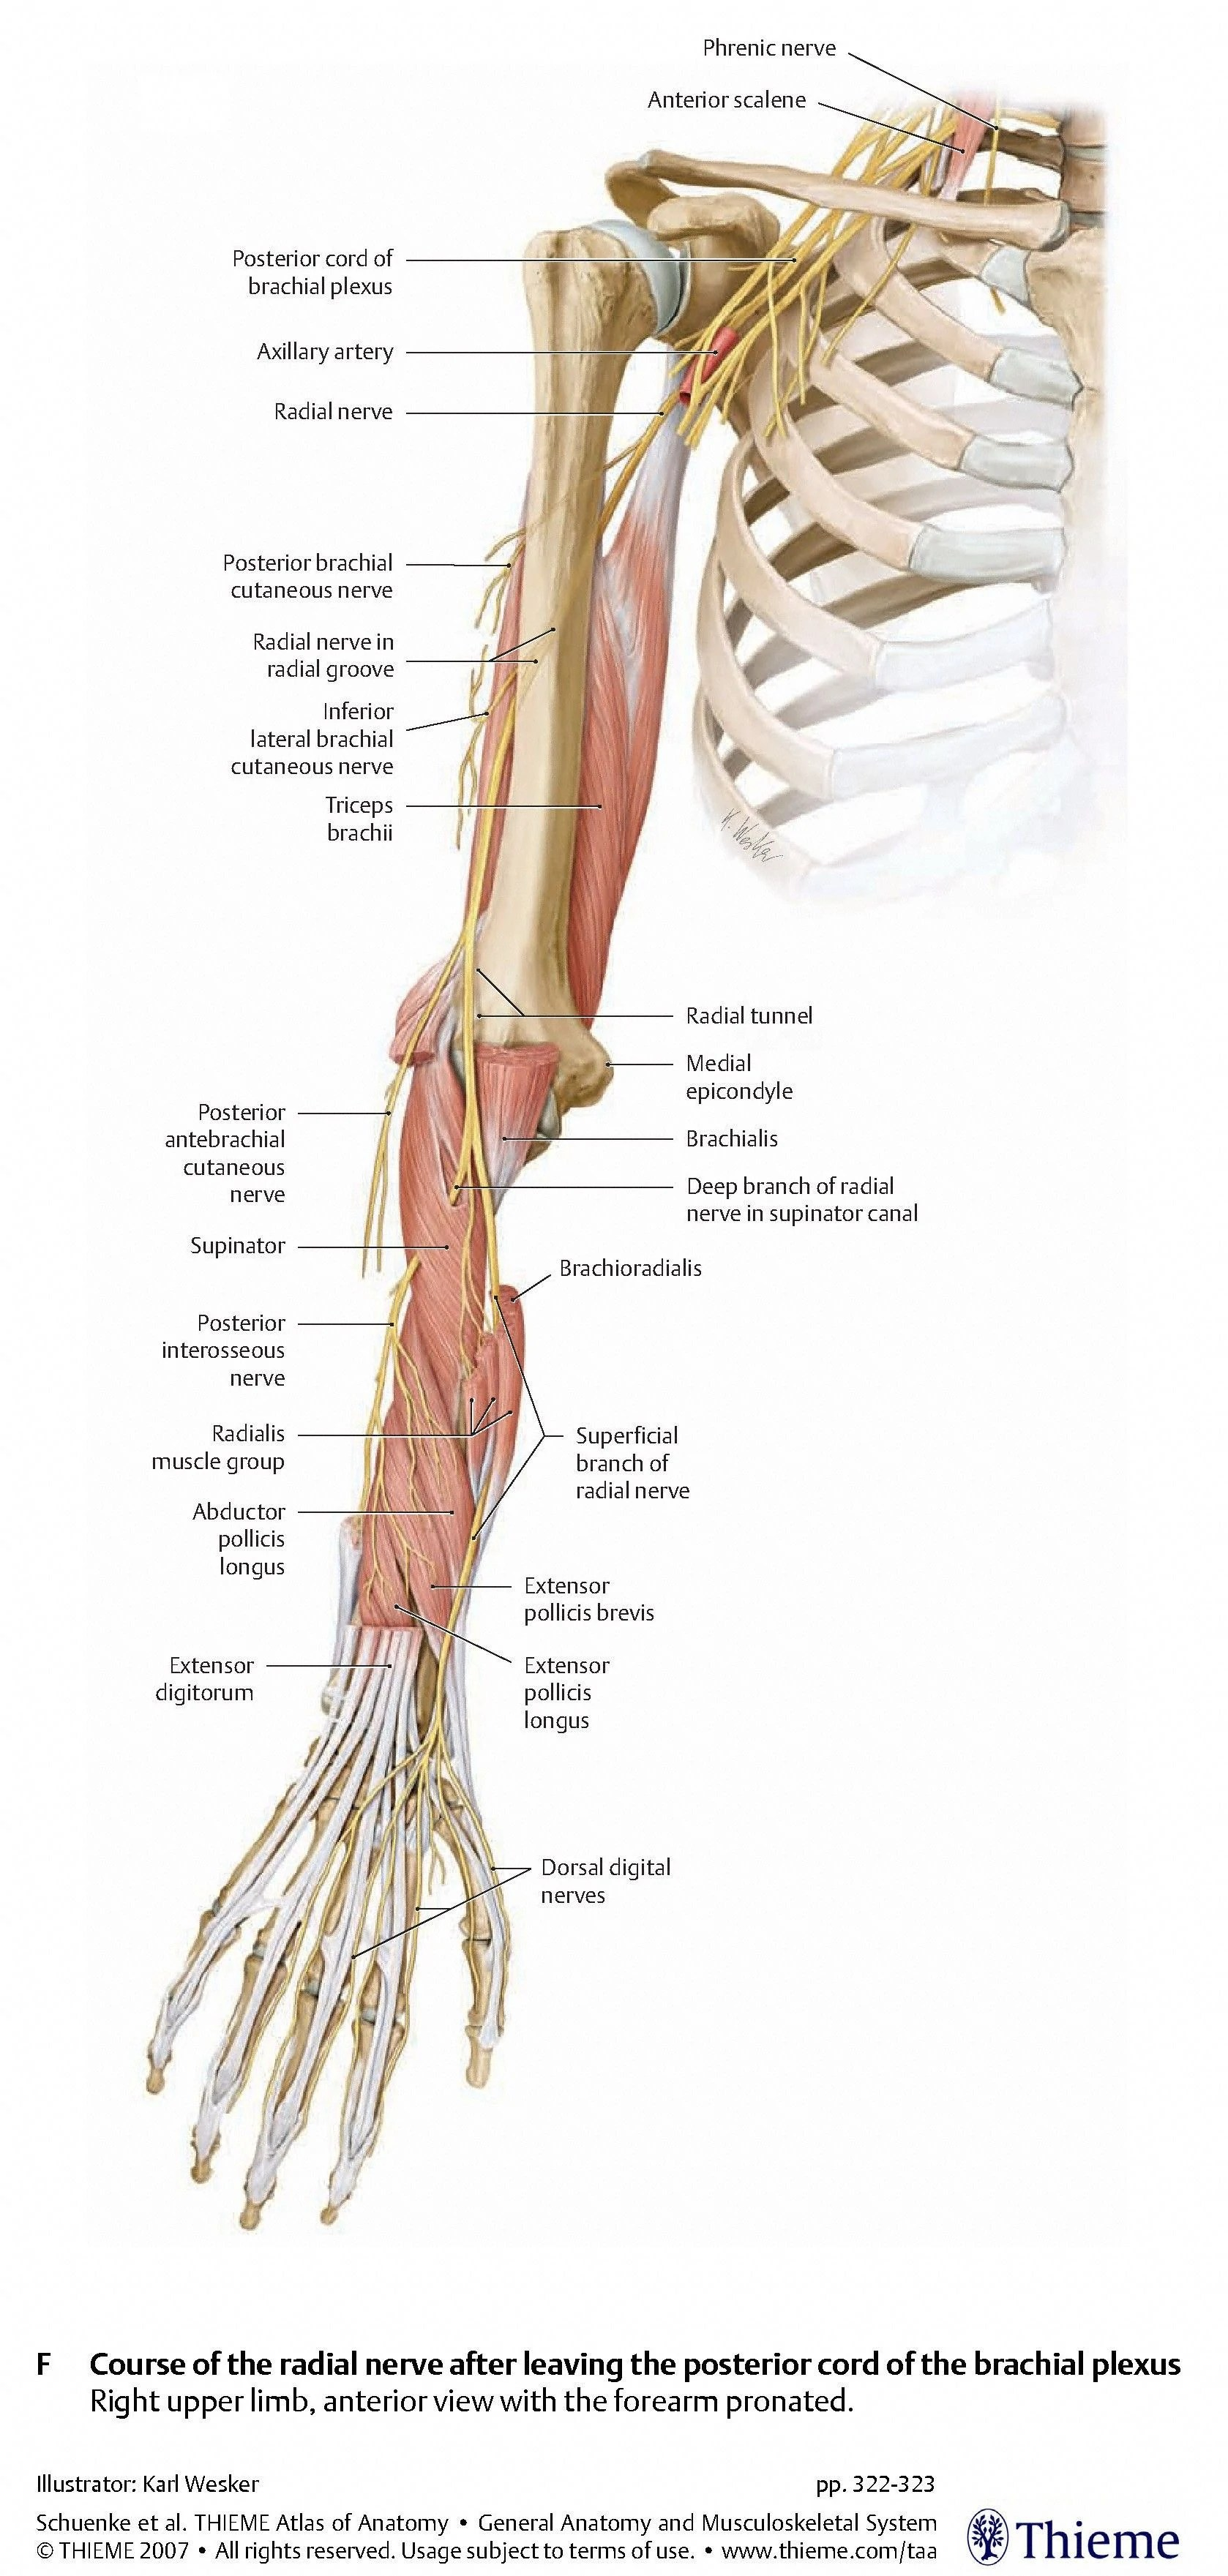 nerves arm shoulder radial nerve course relations and innervation [ 1678 x 3521 Pixel ]